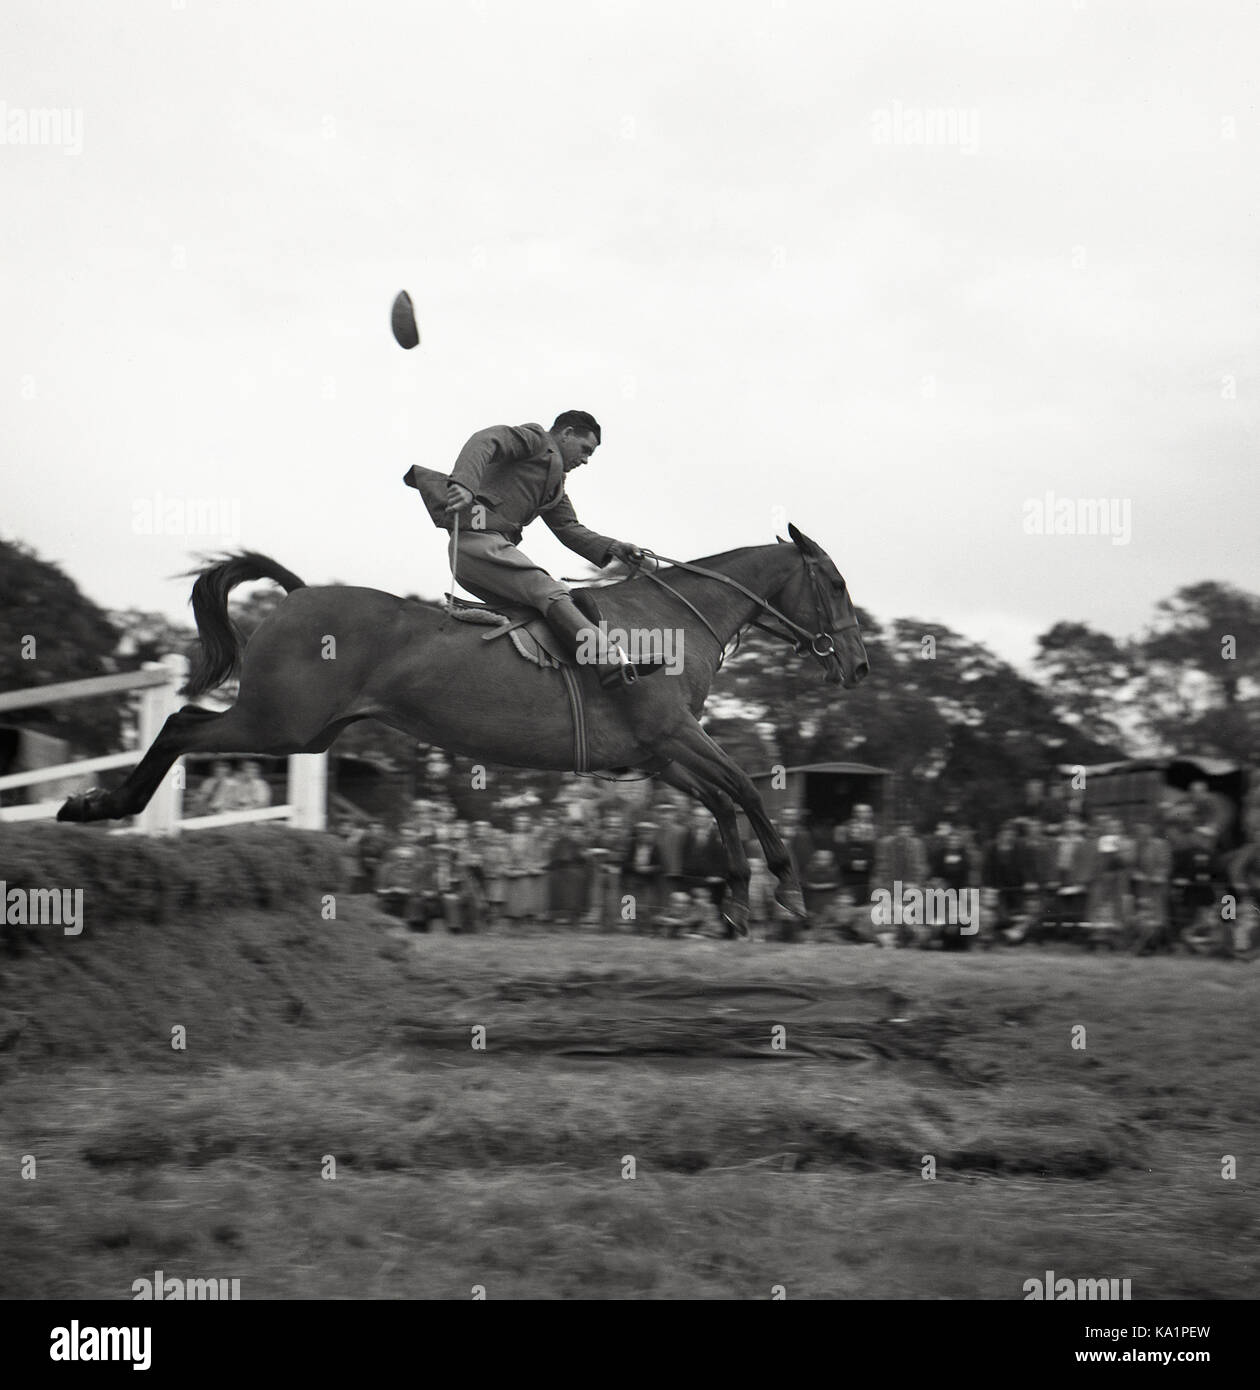 1950s, historical, outdoor eventing competition, a male rider on his horse jumping over a water fence holding the - Stock Image